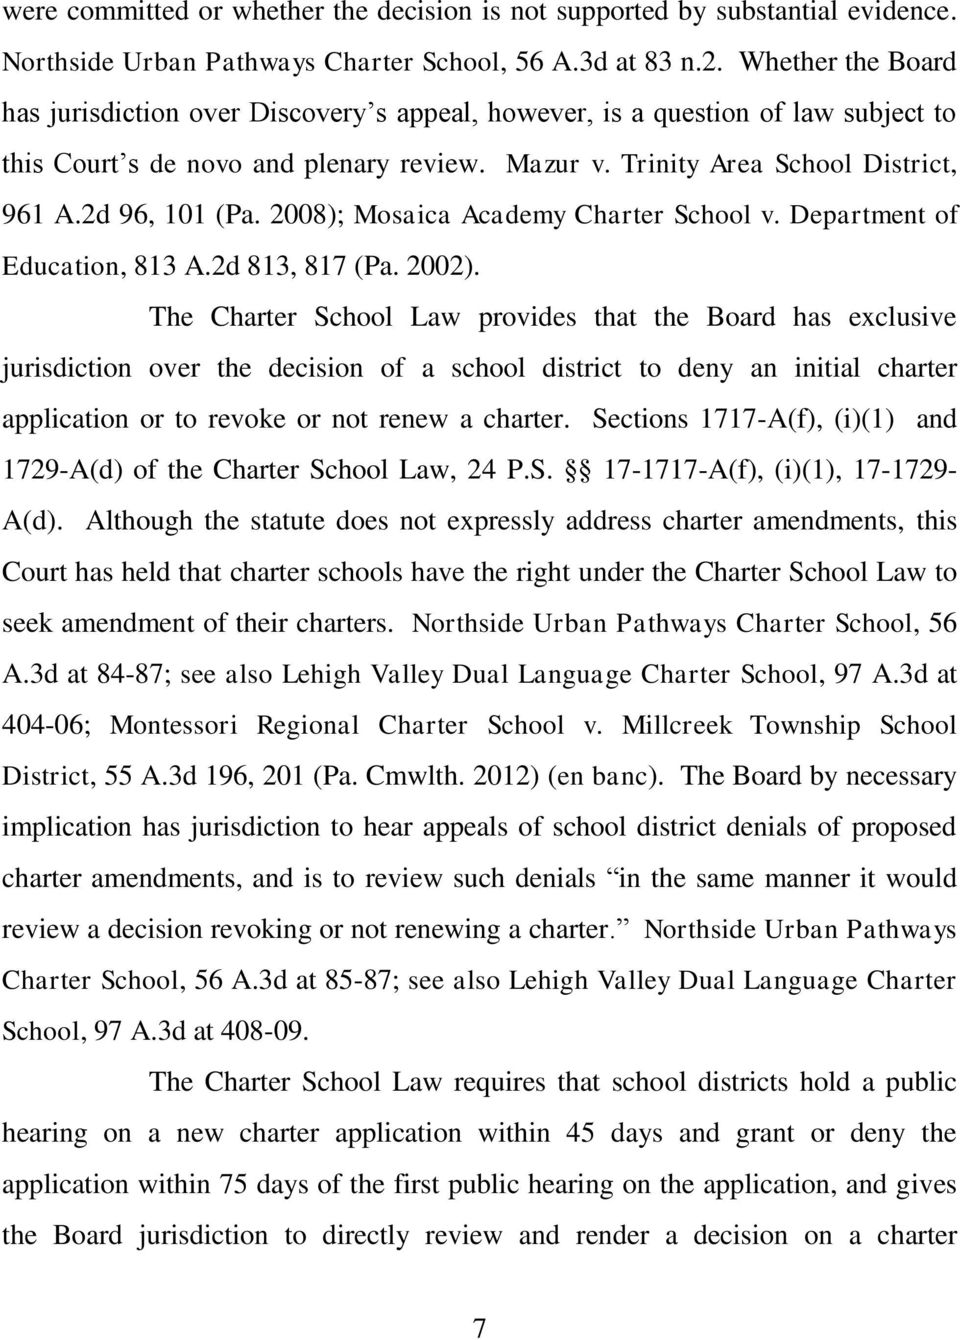 2d 96, 101 (Pa. 2008); Mosaica Academy Charter School v. Department of Education, 813 A.2d 813, 817 (Pa. 2002).